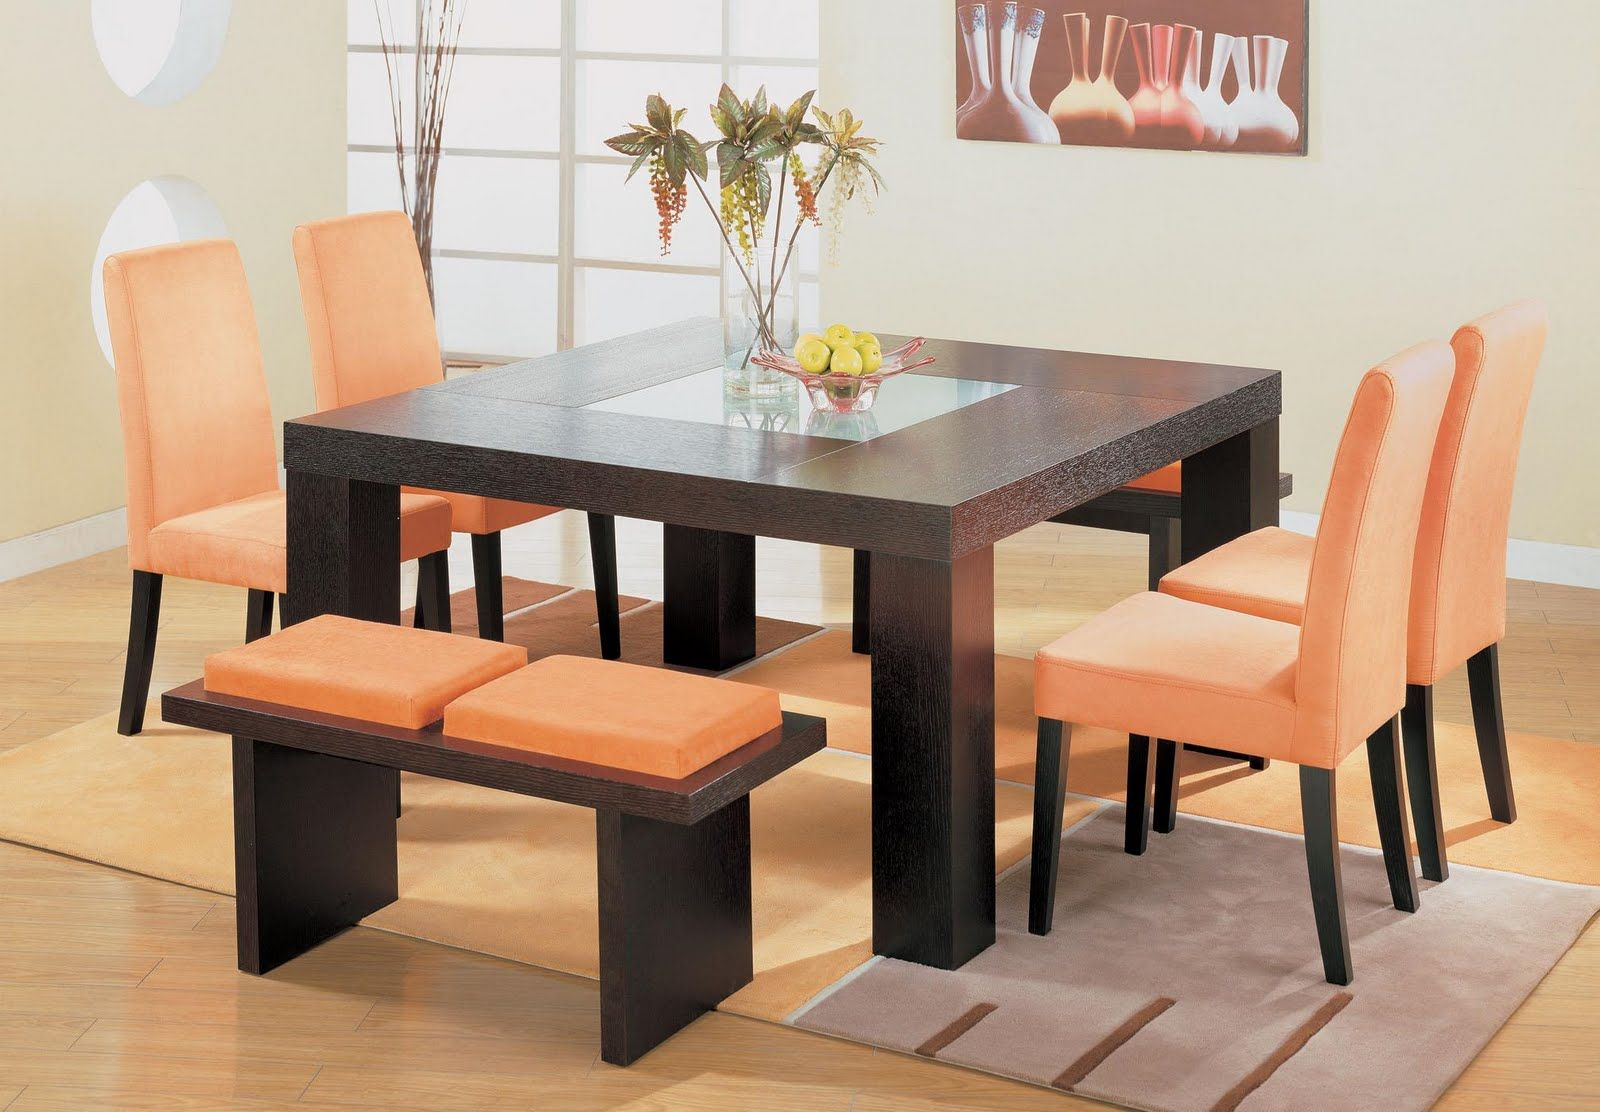 Square Dining Table Design for Your Home Décor Square